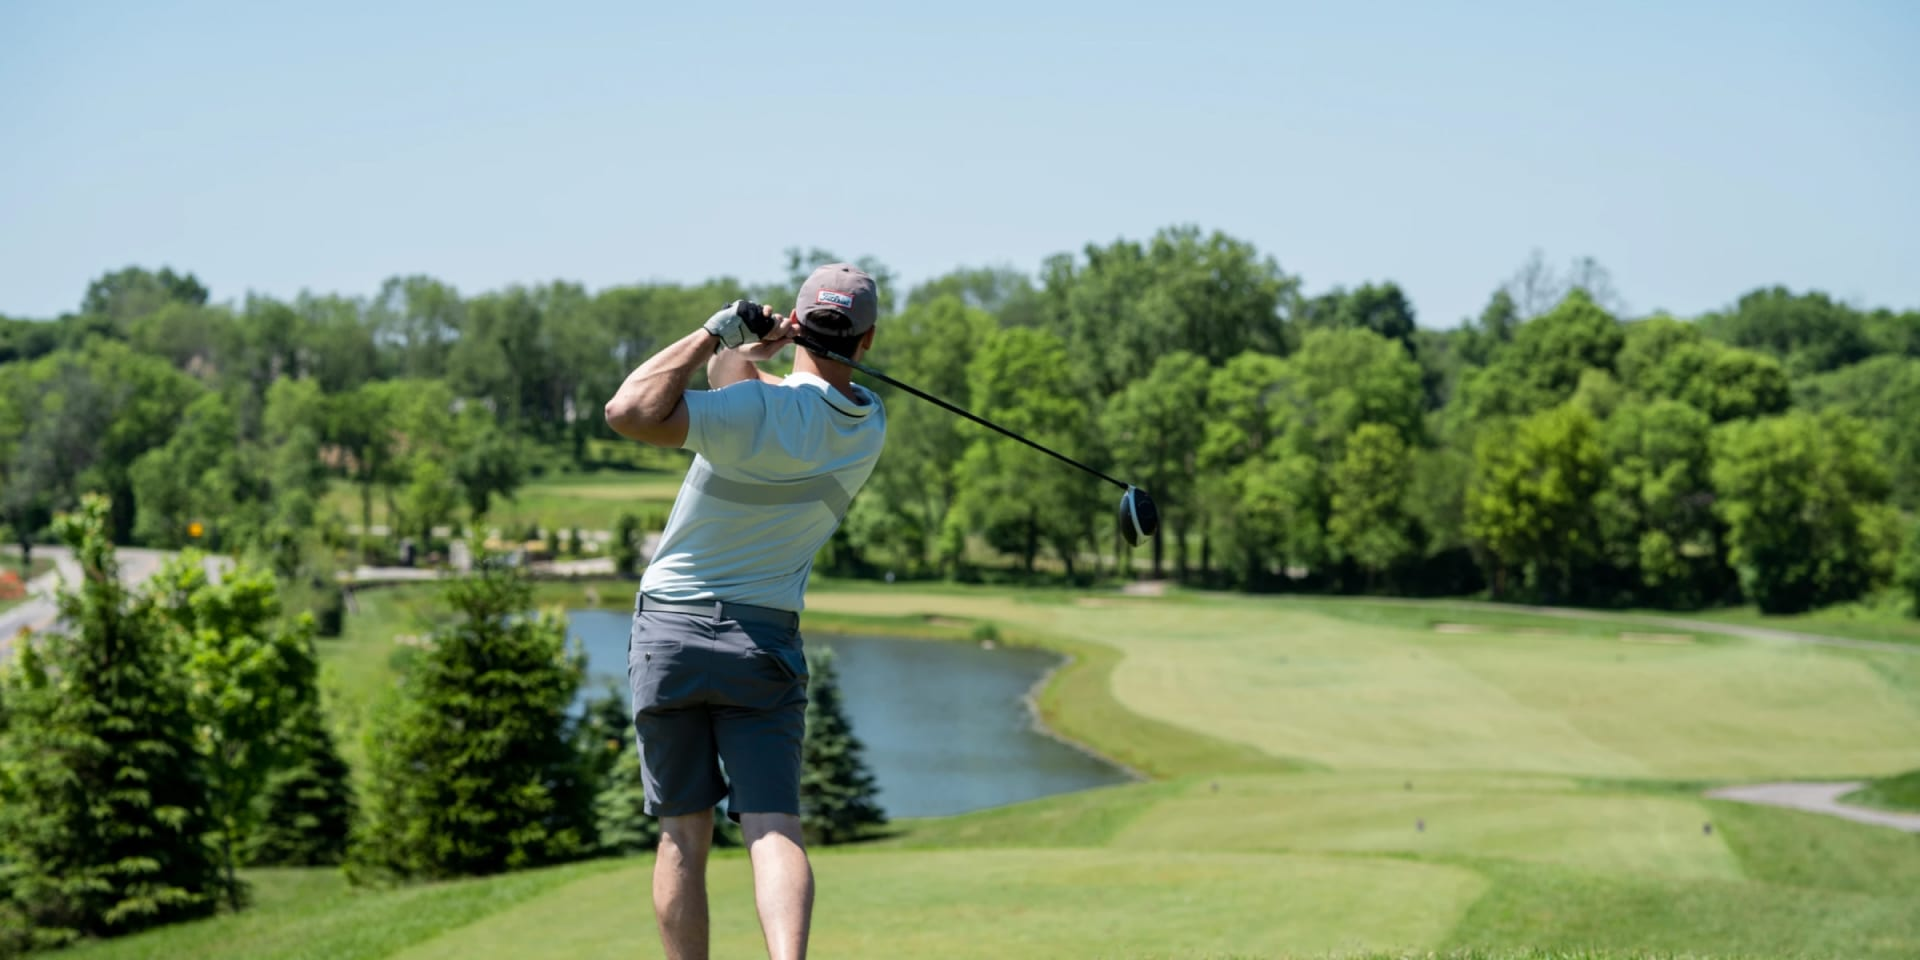 30th edition of the Golf Tournament - May 31st 2021